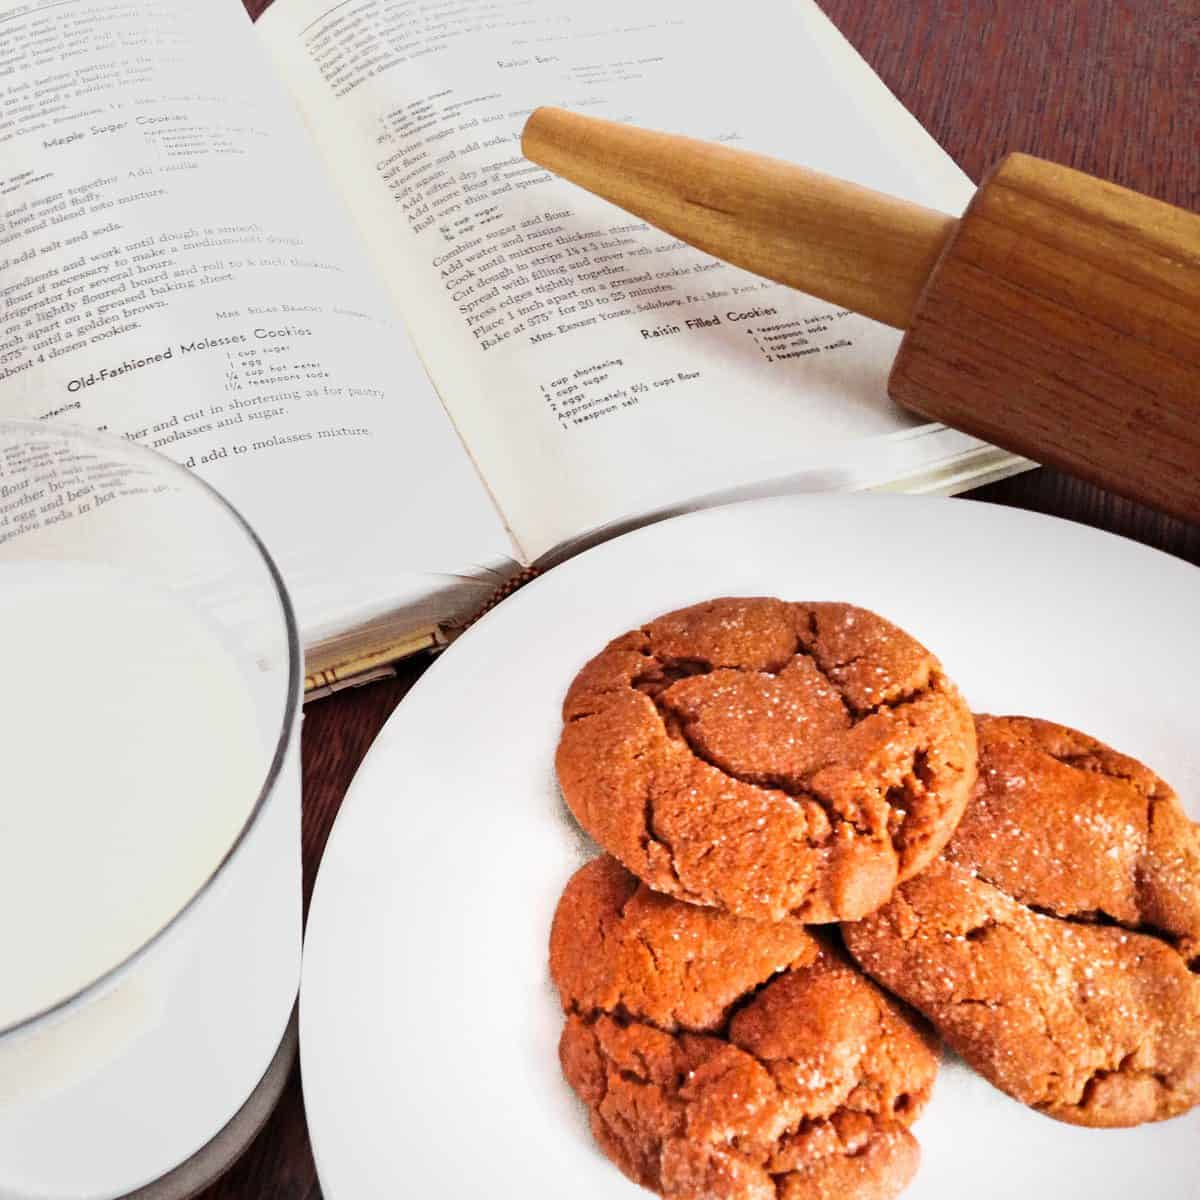 Plate of molasses cookies with a rolling pin, a glas of milk and the Mennonite Community Cookbook.